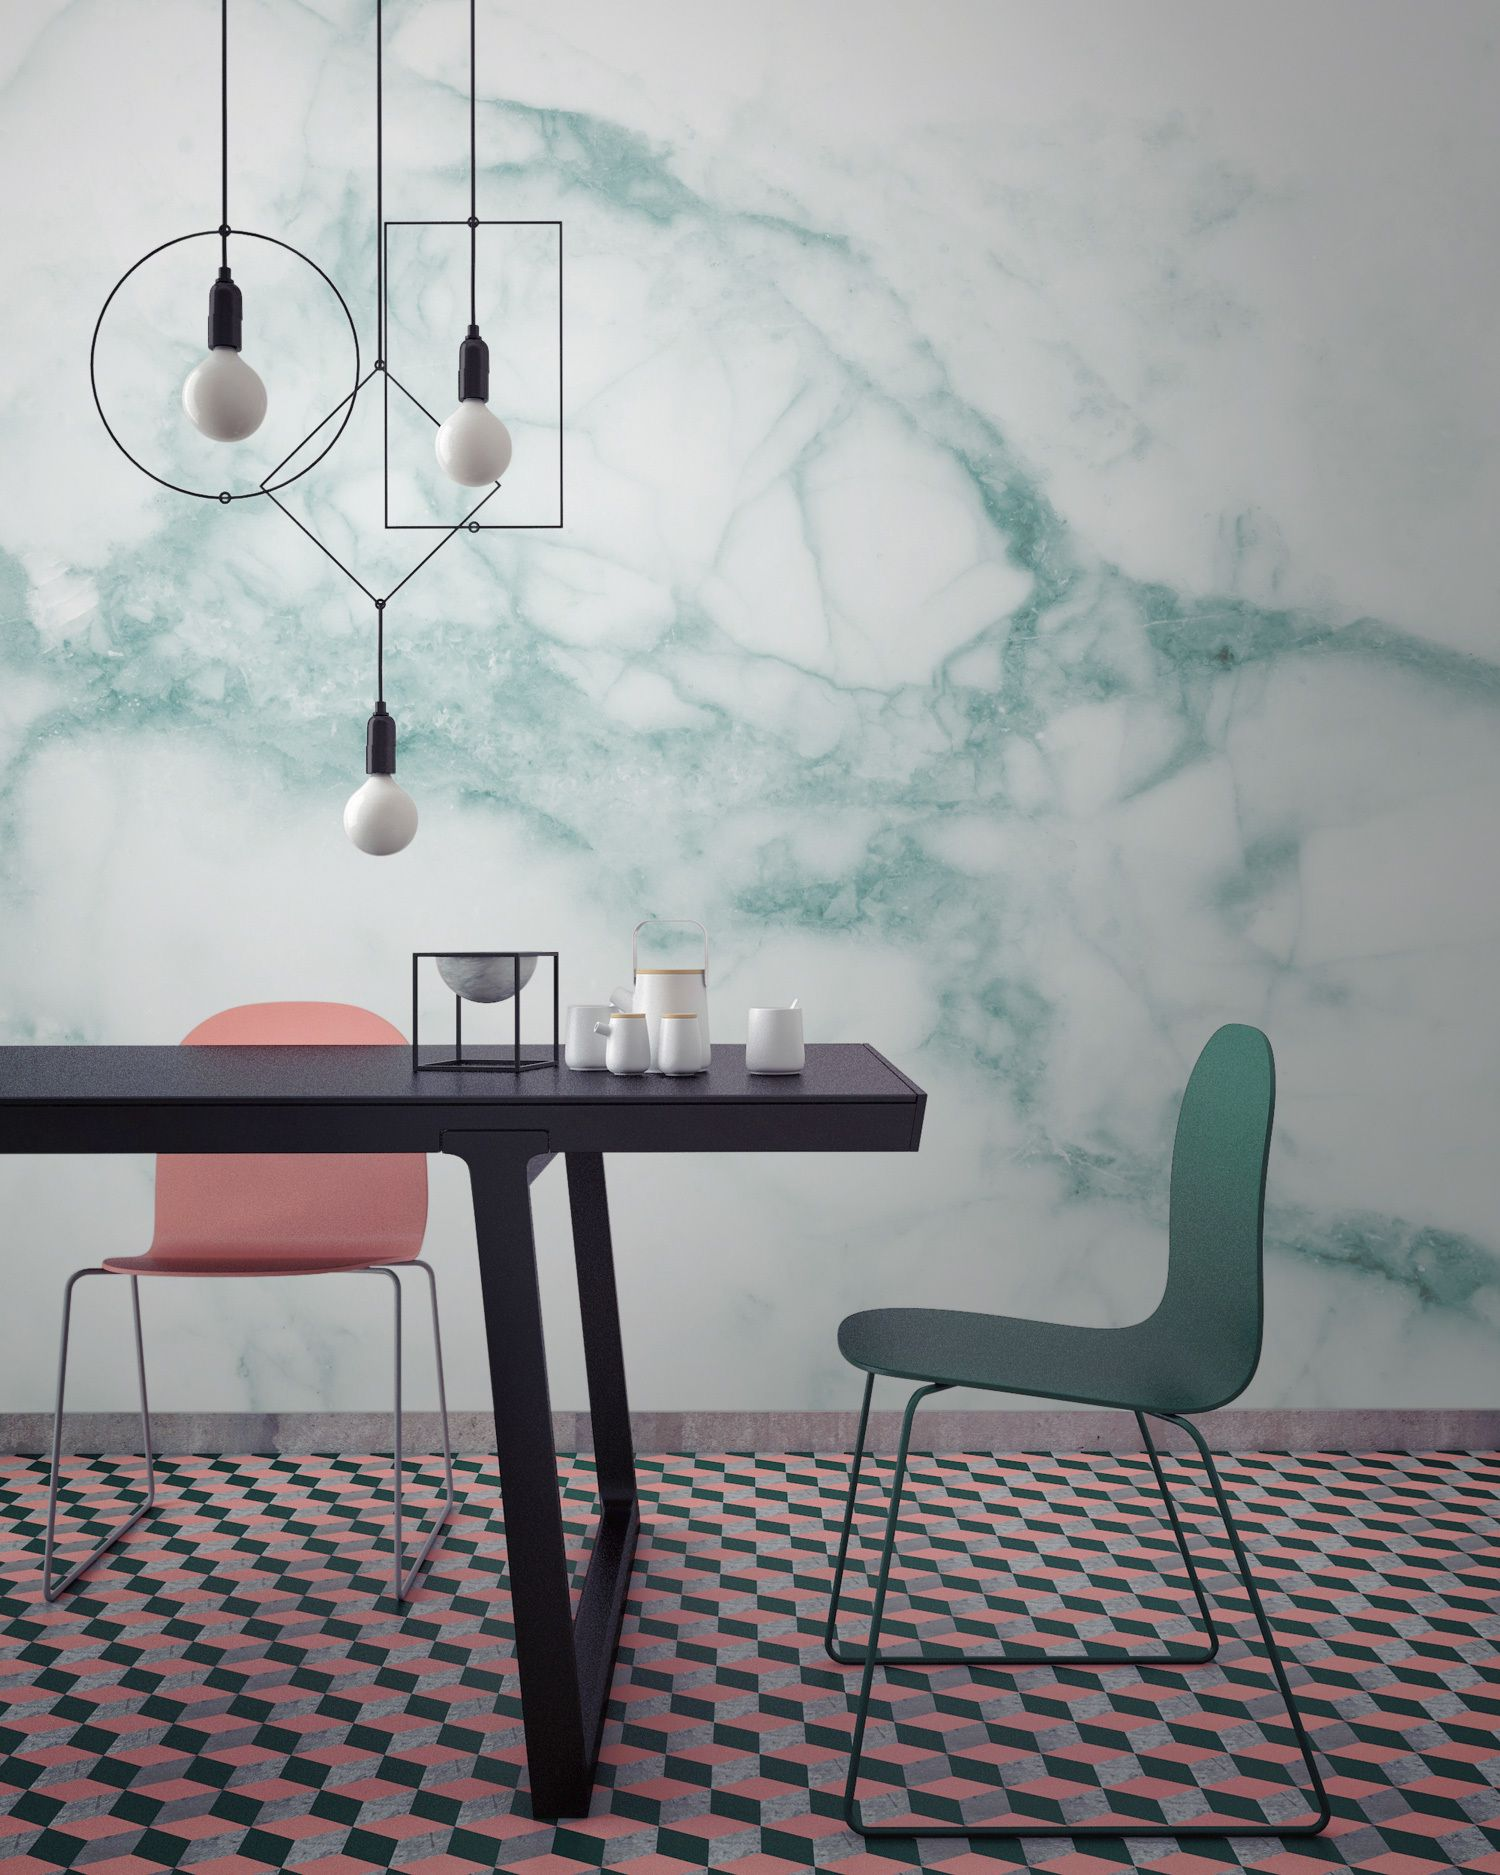 in love with marble everything this marble wallpaper design this marble wallpaper design brings this room together wonderfully